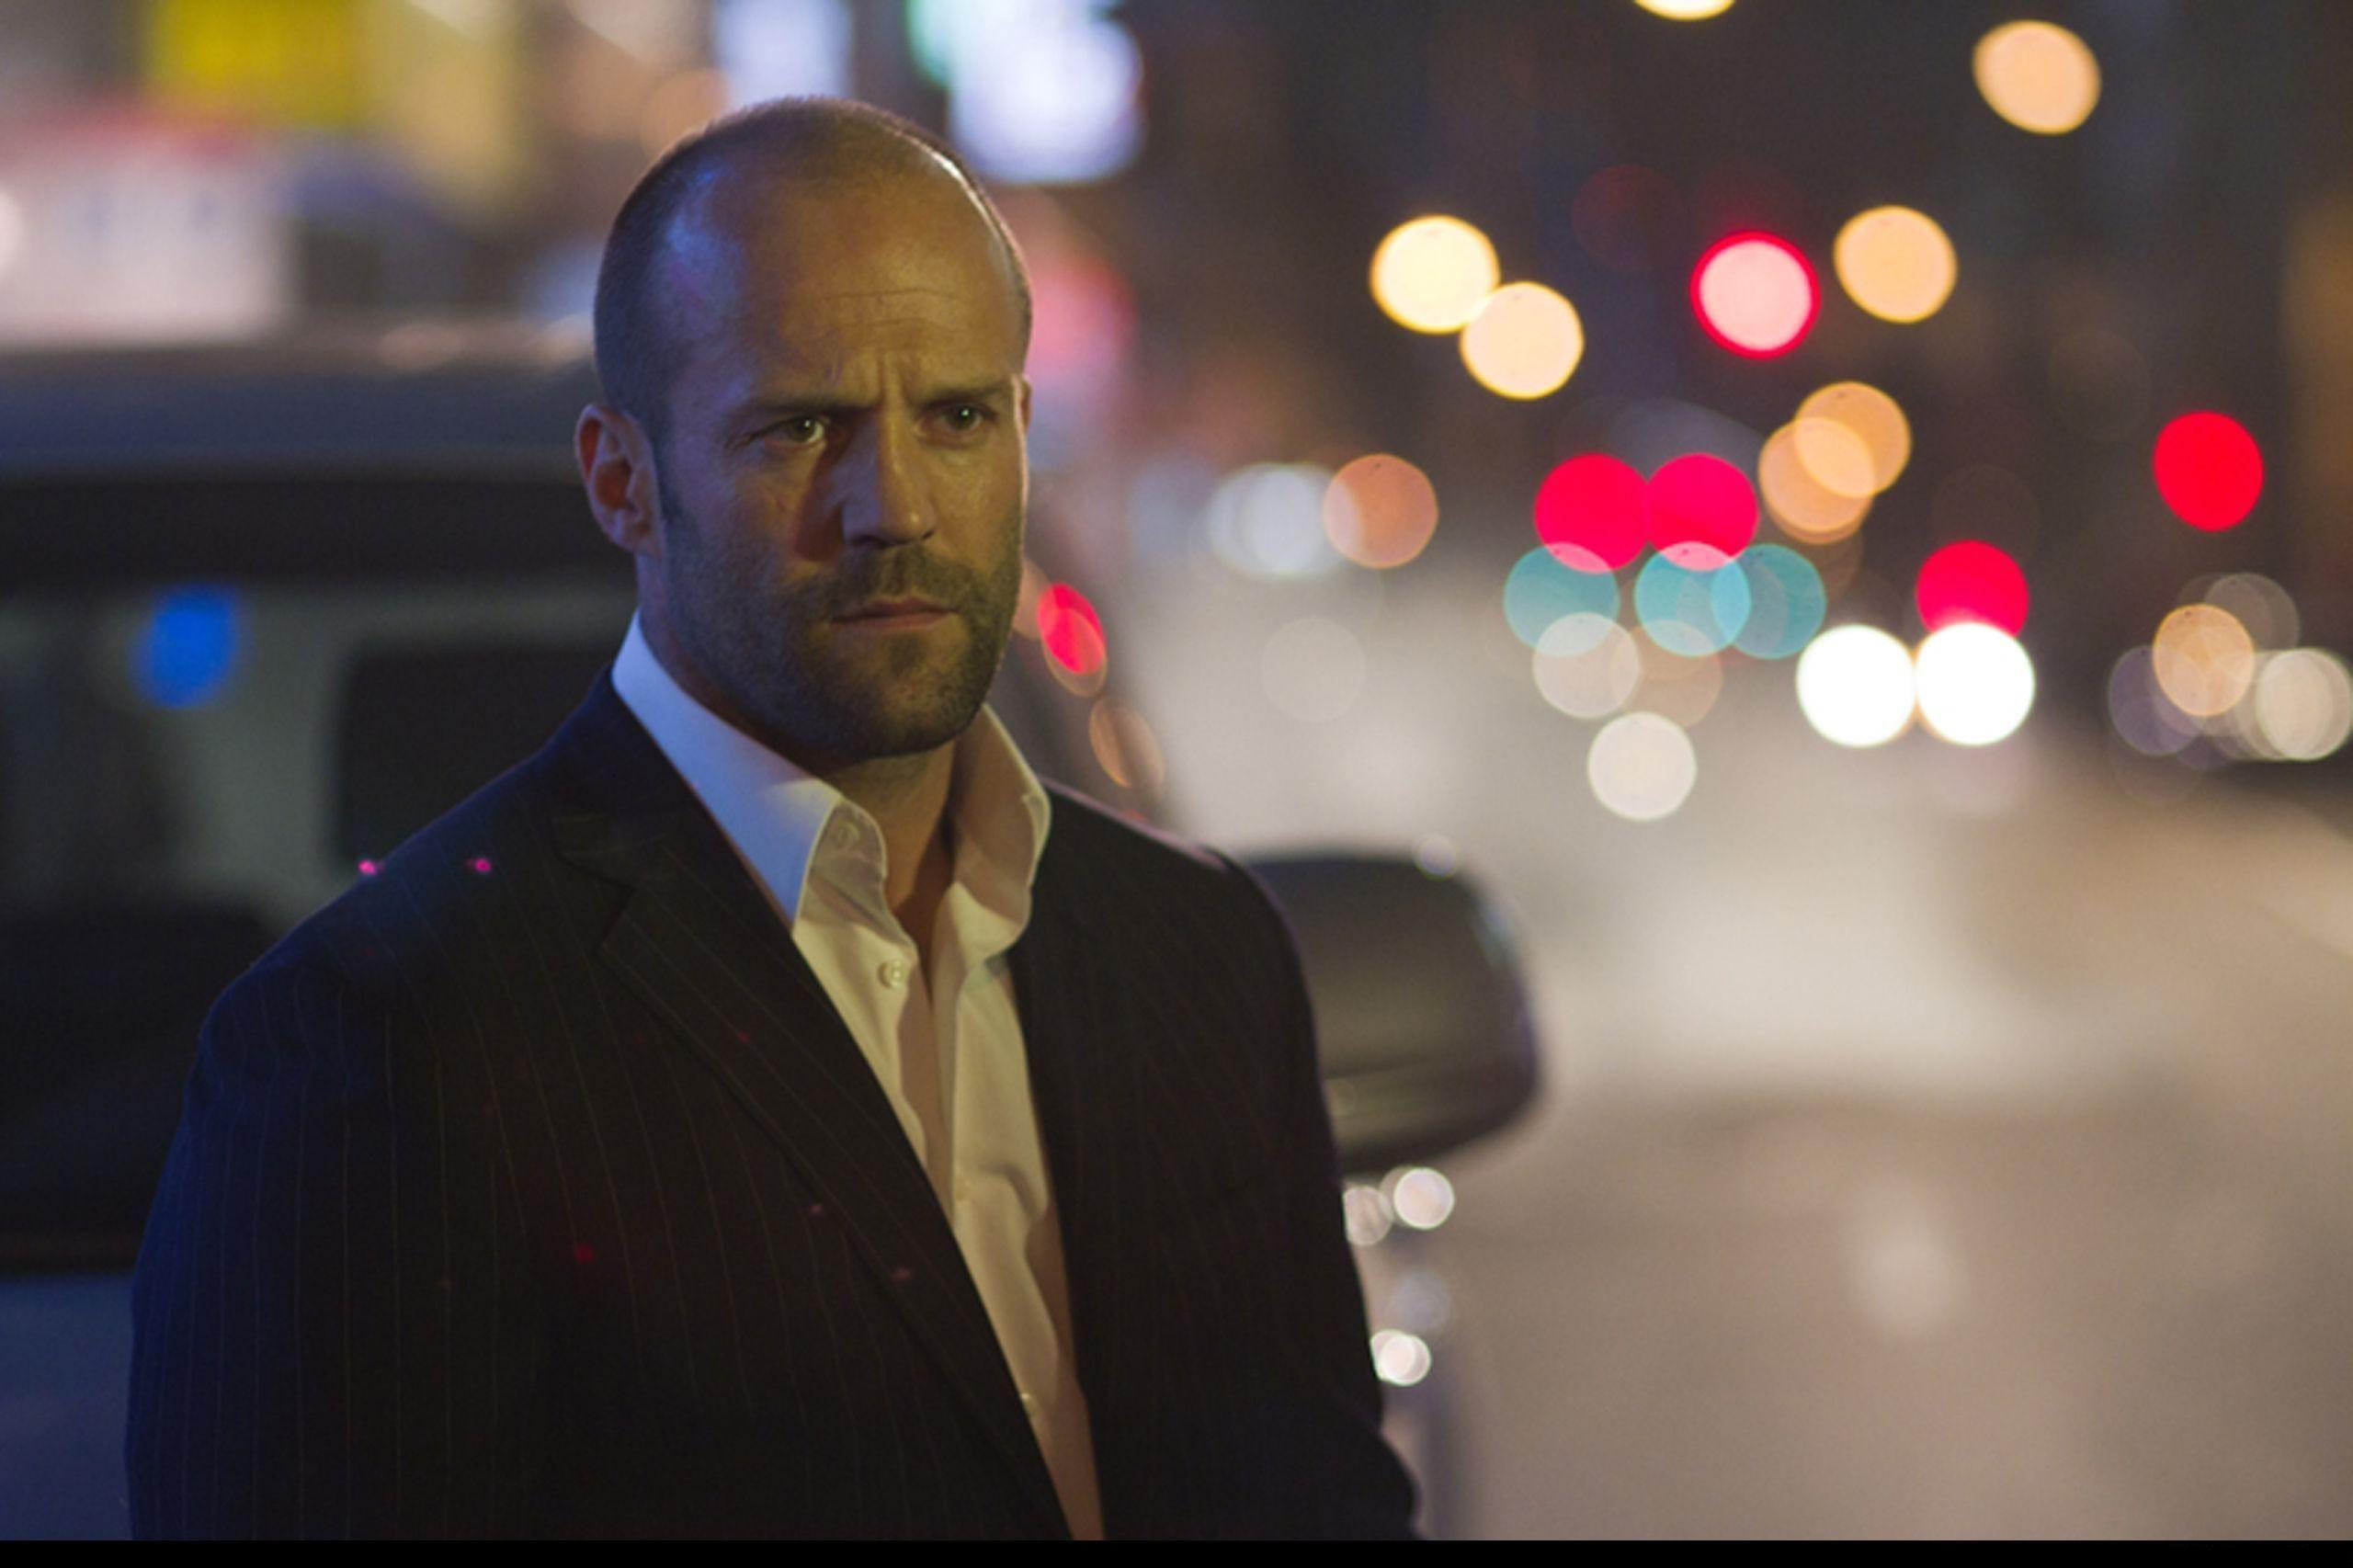 Jason Statham Desktop Wallpaper - Celebrities Powericare.